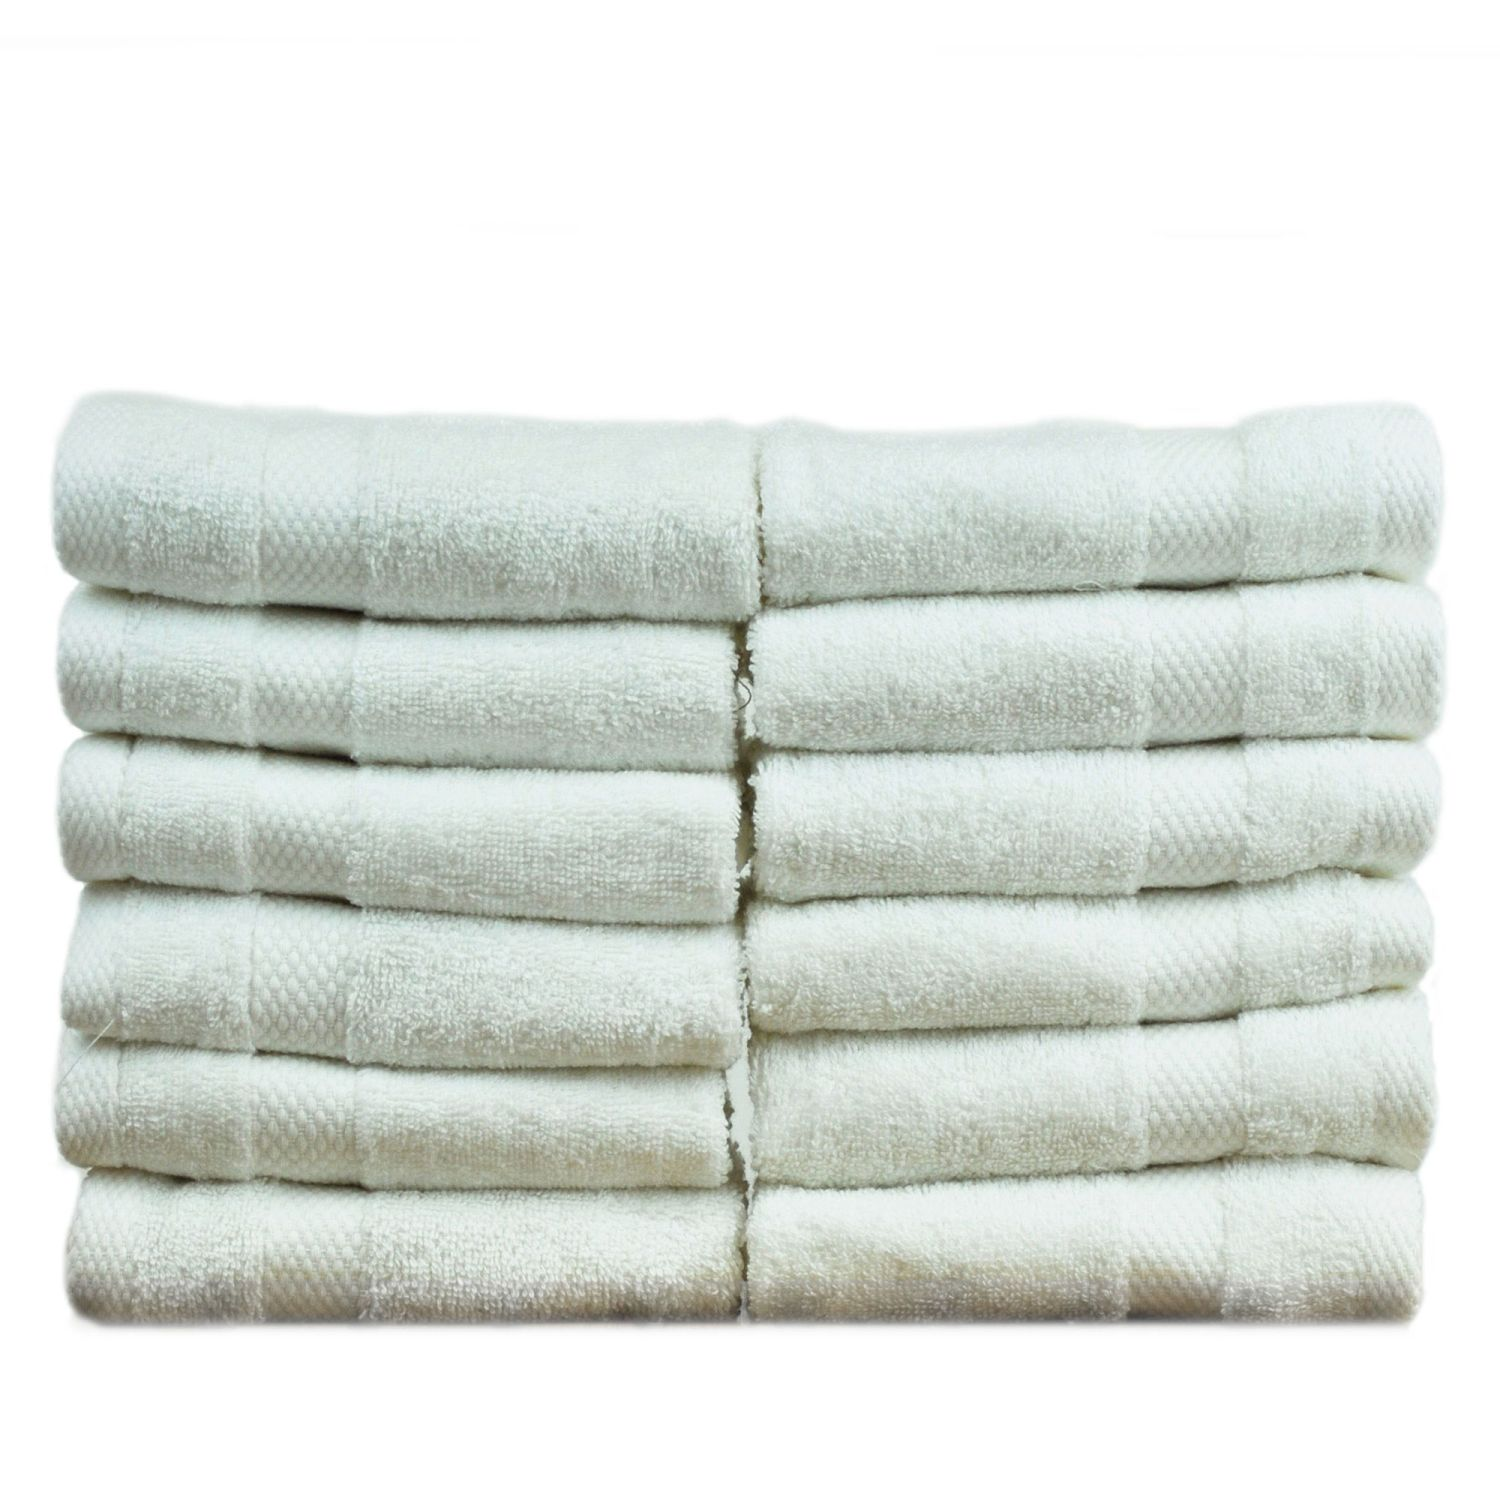 Bare Cotton Luxury Hotel & Spa Towel 100% Genuine Turkish Cotton Washcloths - White - Honeycomb - Set of 1